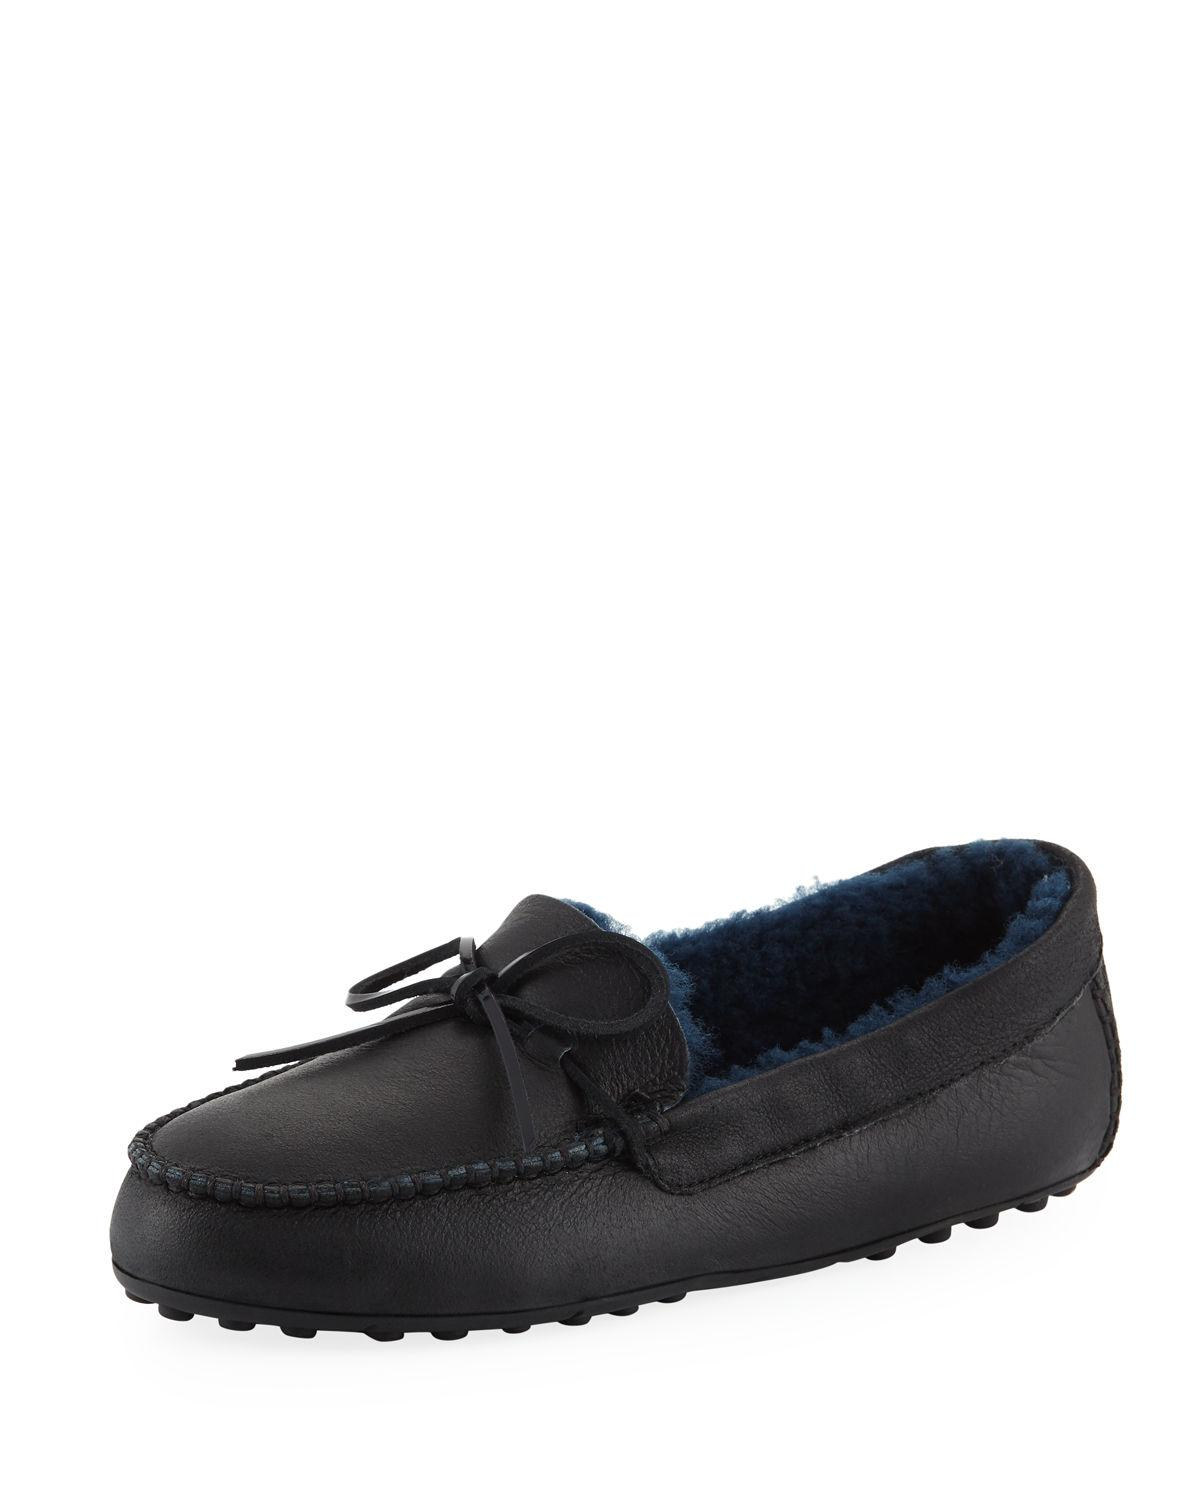 aa16be0569e Ugg Deluxe Moc Loafer Slippers In Black Leather